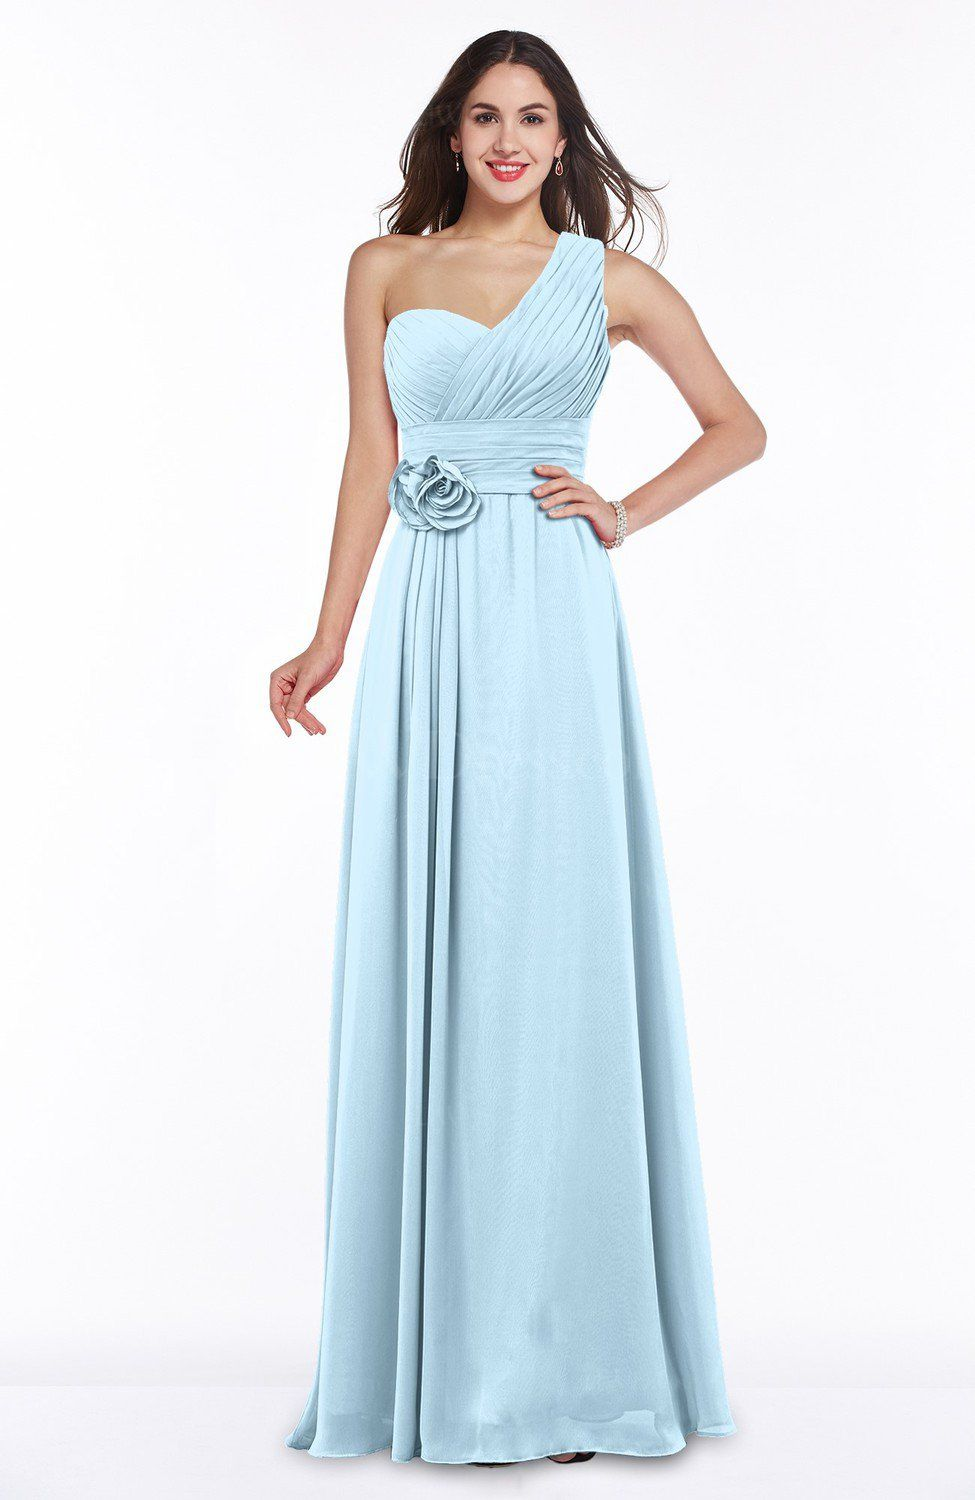 Ice blue bridesmaid dresses uk google search bridesmaid ice blue bridesmaid dresses uk google search ombrellifo Image collections